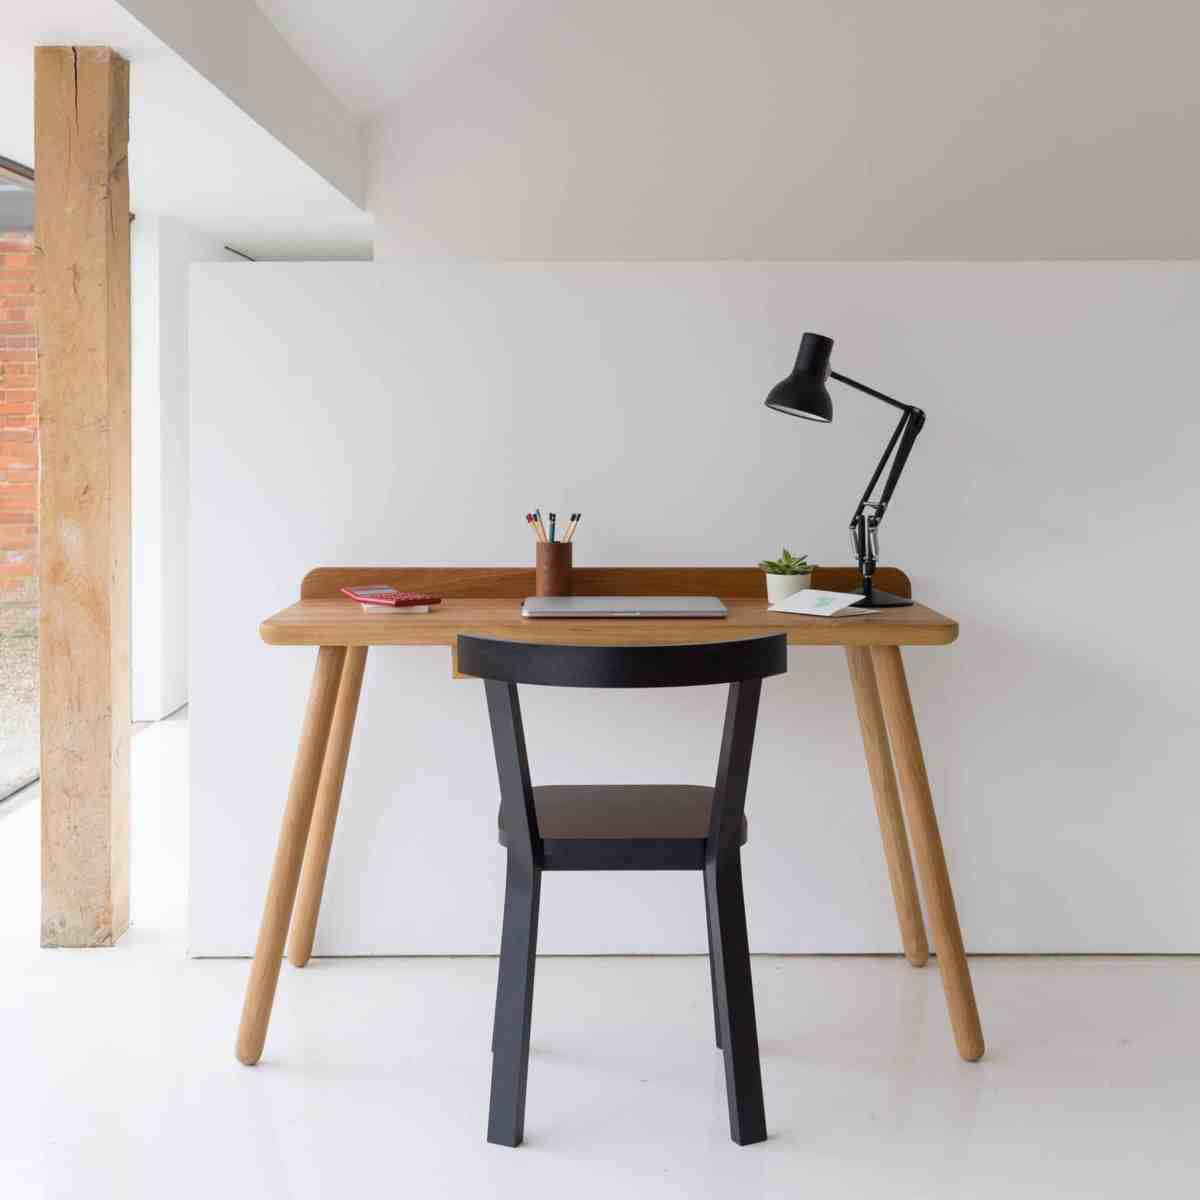 contemporary-craft-products-desk-one-Another-Country-002